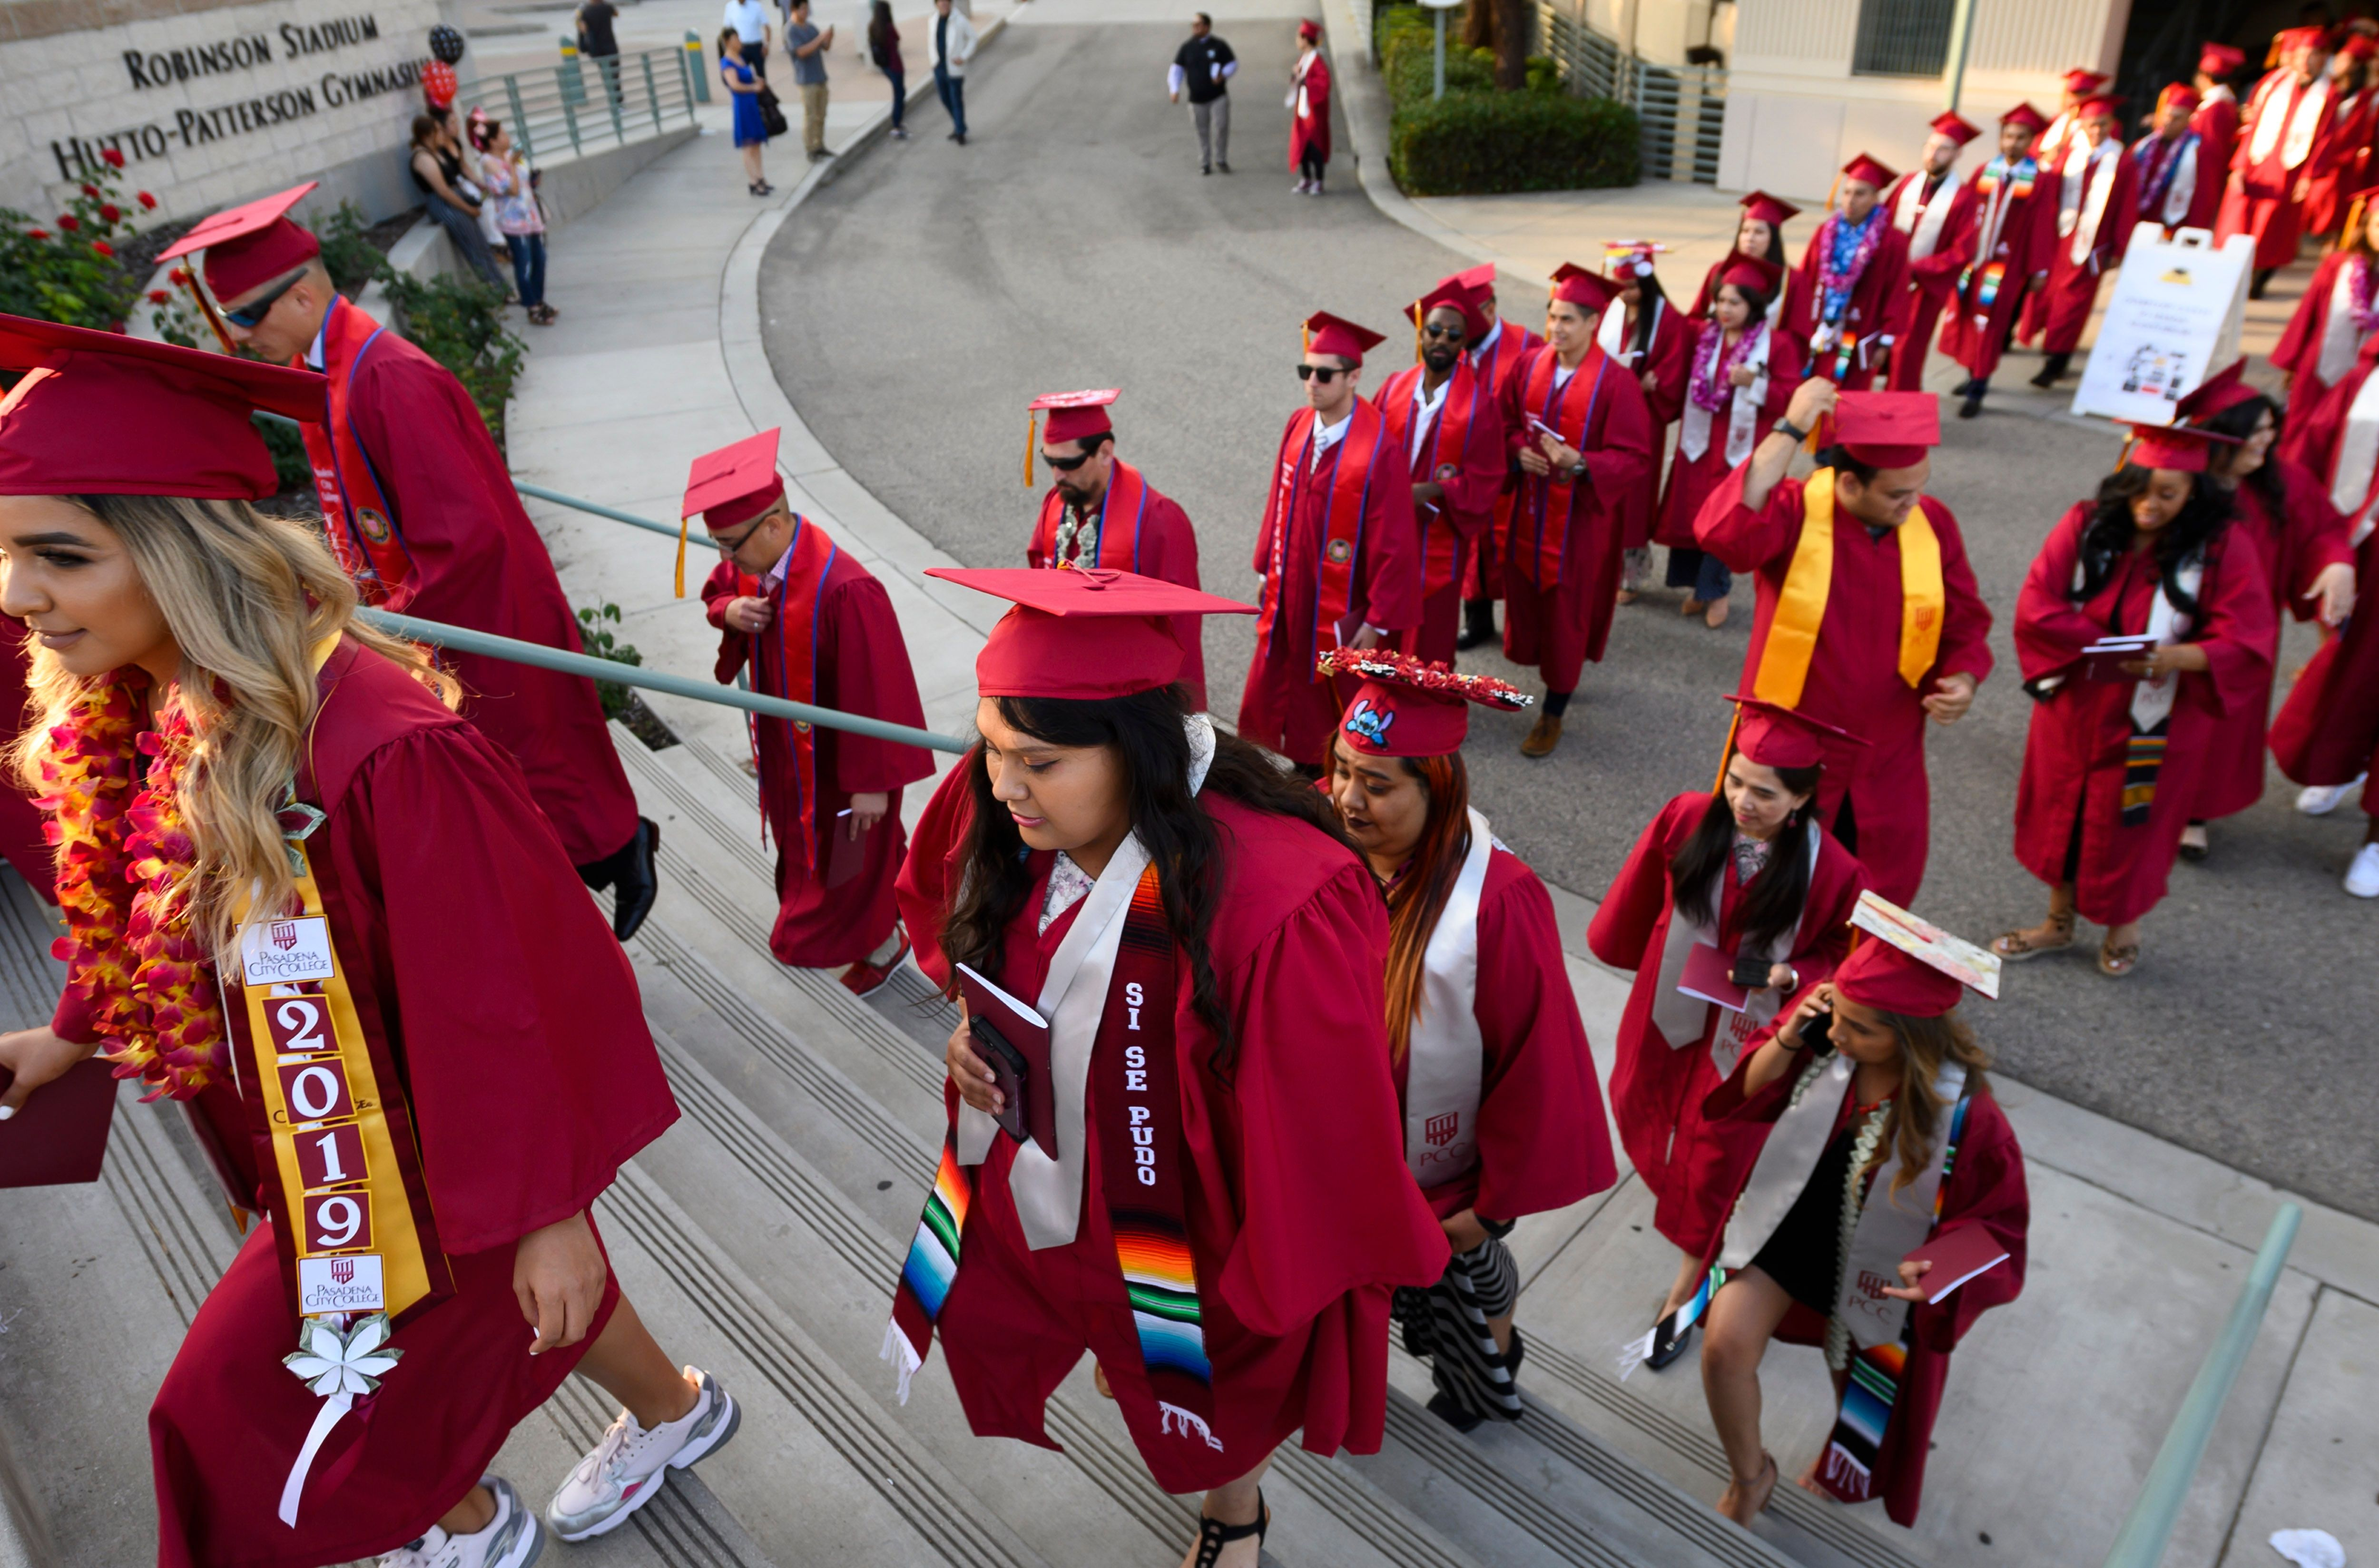 Students earning degrees at Pasadena City College participate in the graduation ceremony on June 14, 2019, in Pasadena, California. With 45 million borrowers owing $1.5 trillion, the student debt crisis in the United States has exploded in recent years.